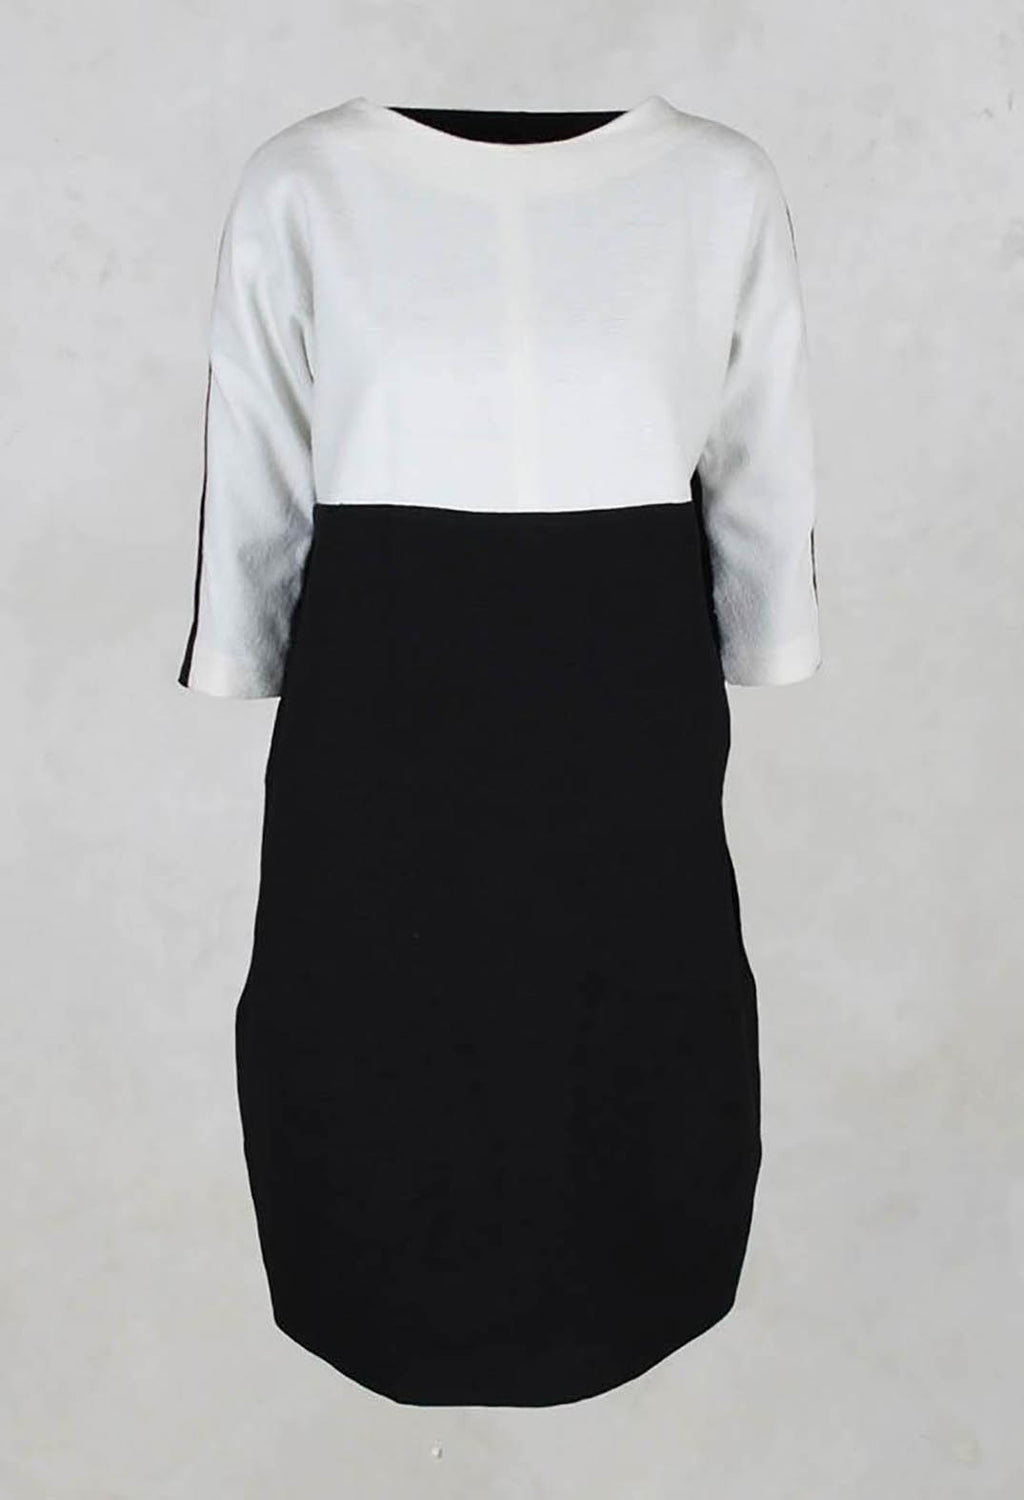 Dress with 3/4 Sleeves in Black/White